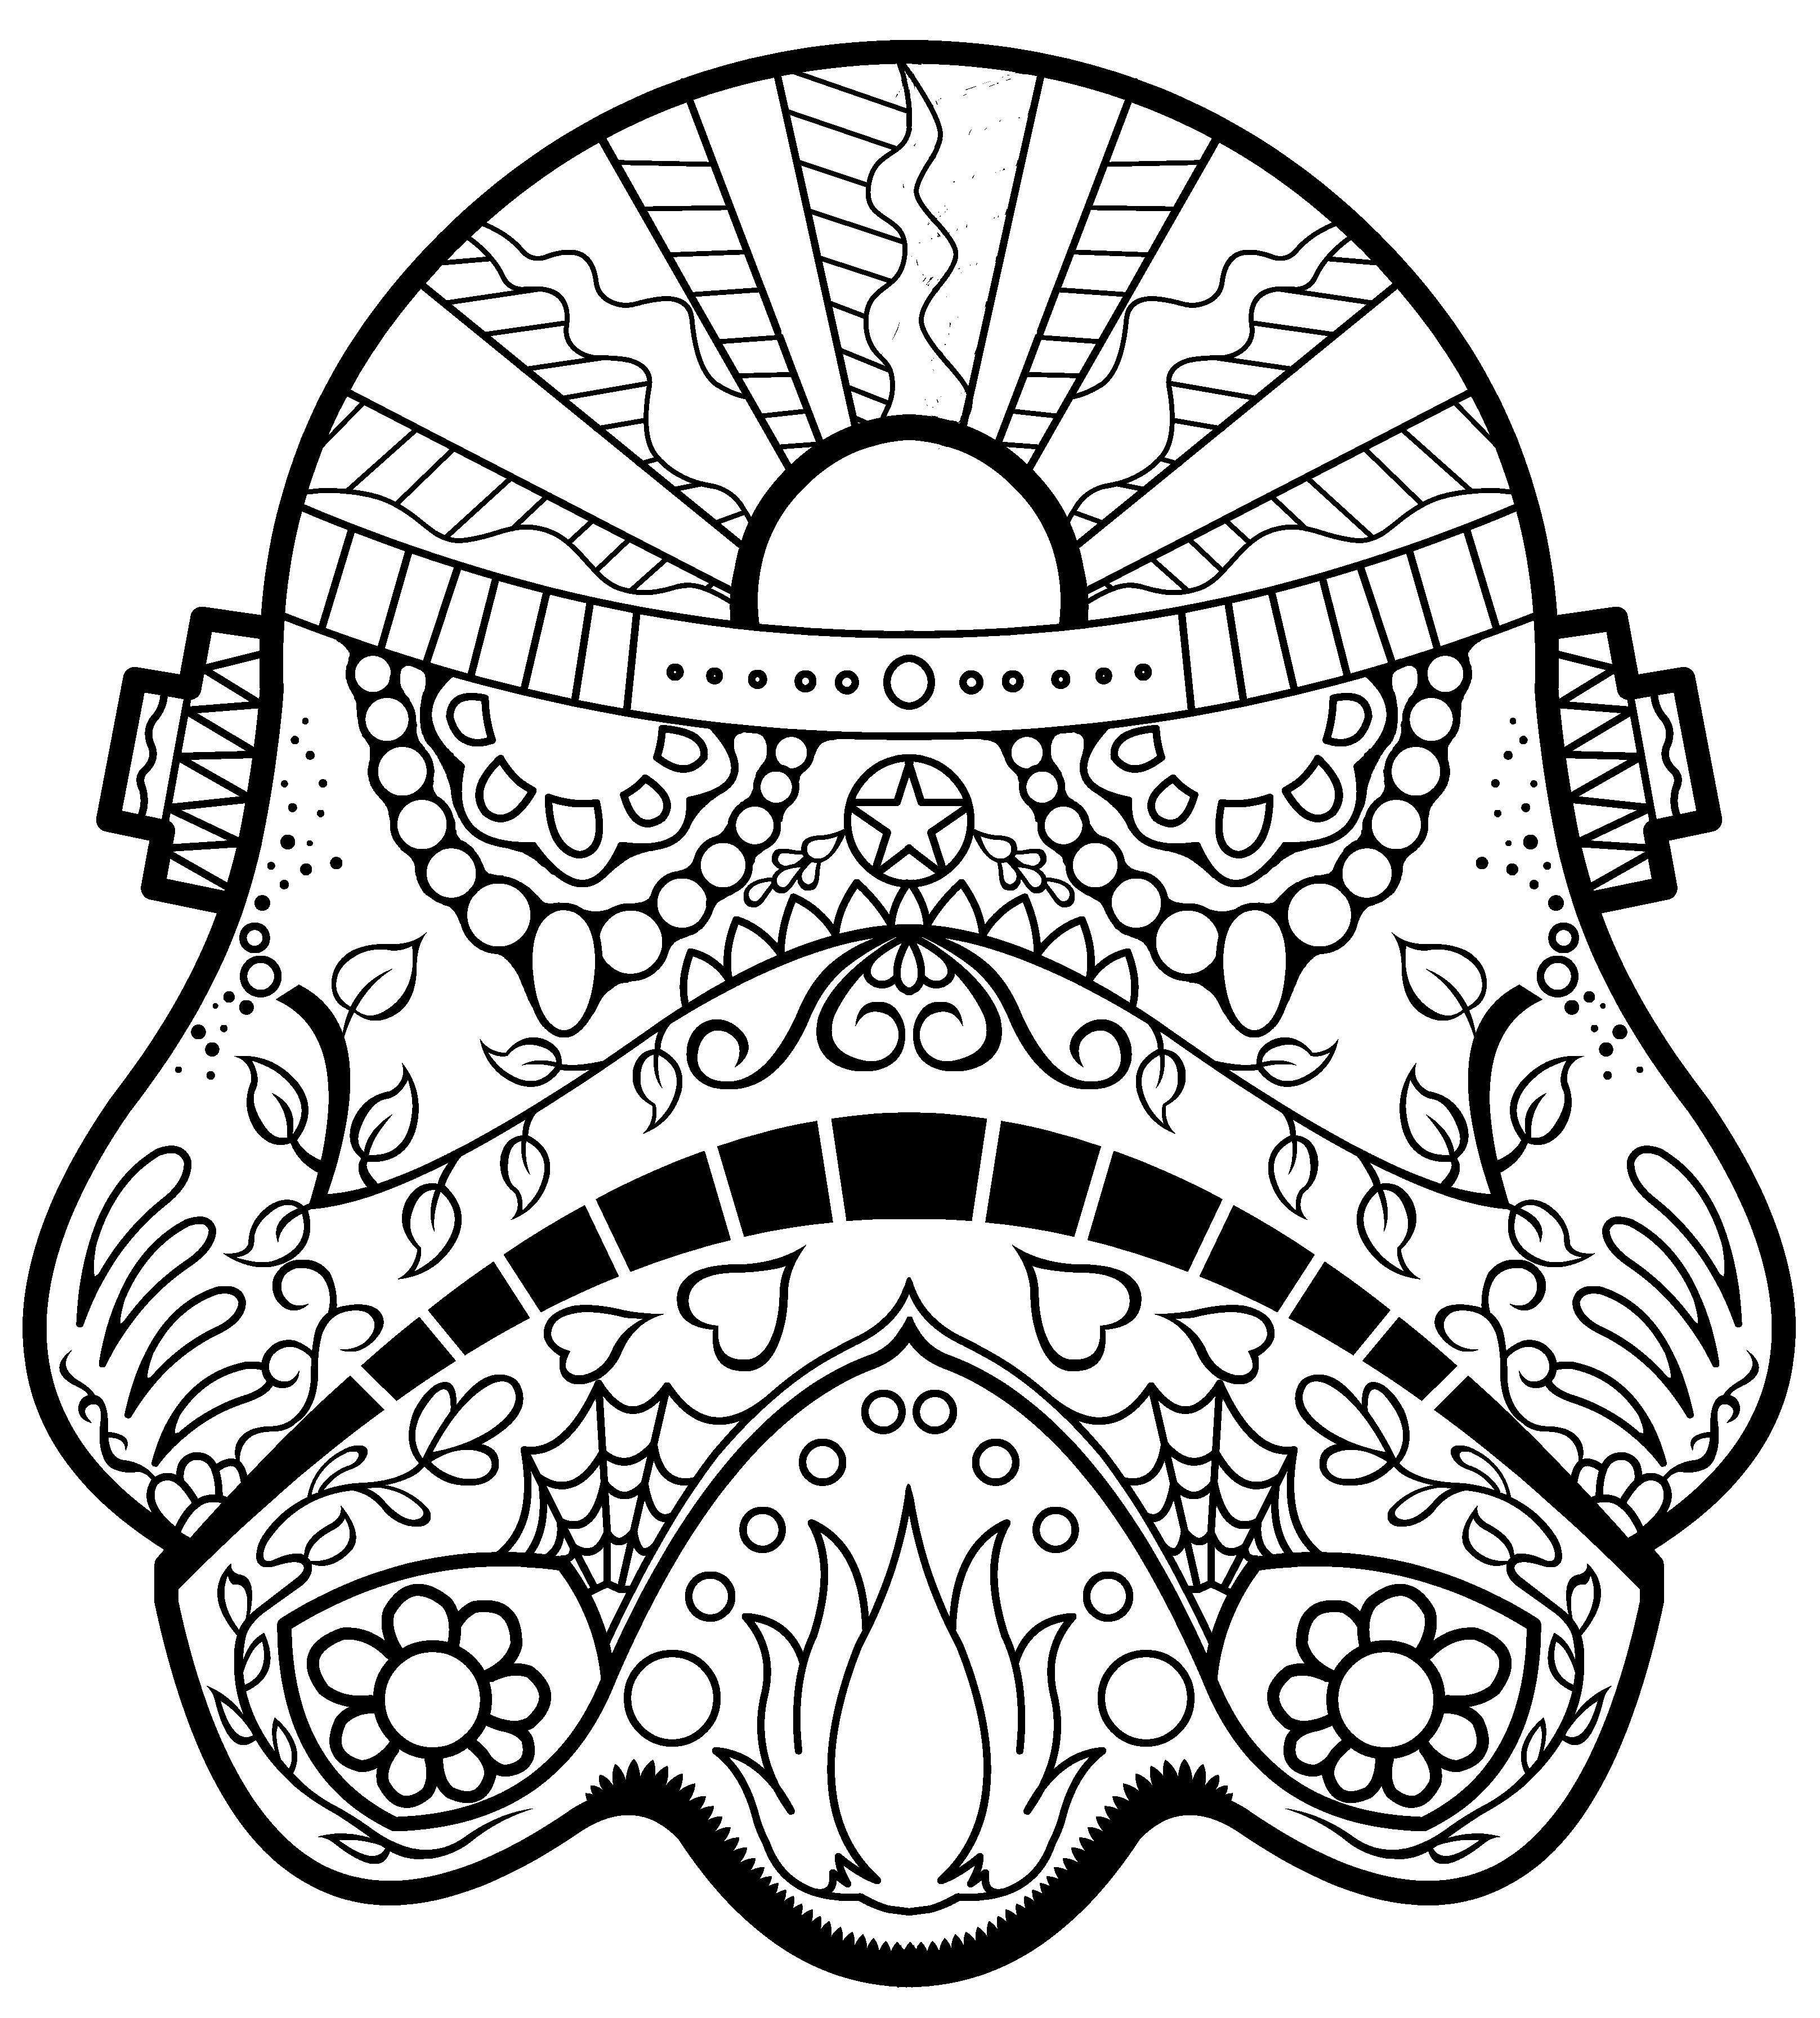 9 52 17 Day Of The Dead Animal Coloring Mandala Coloring Pages Skull Coloring Pages Coloring Pages